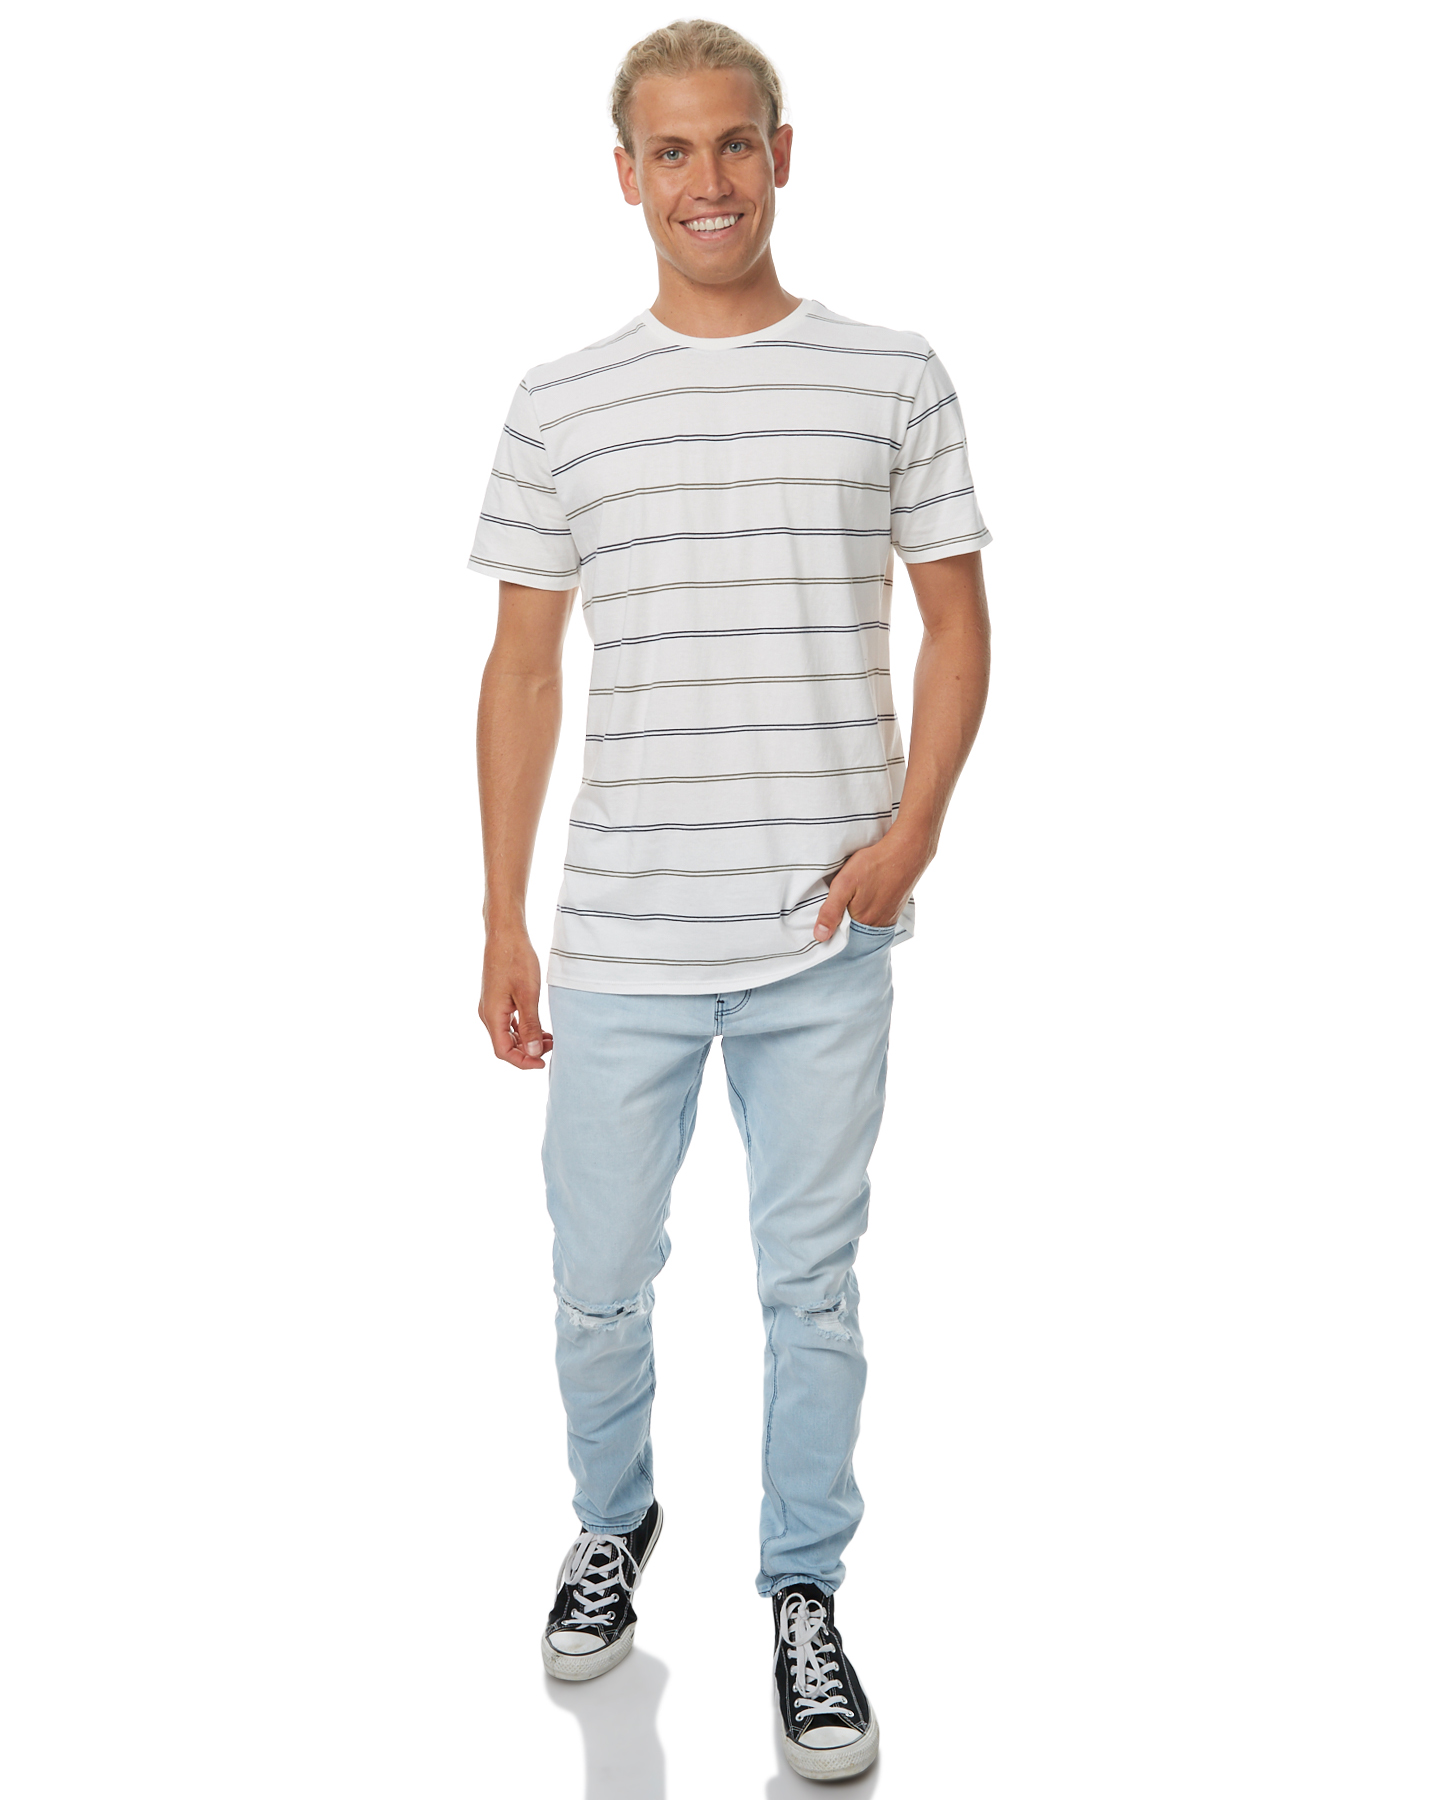 Men's Clothing | Men's Stylists | Stitch FixStyles: Classic, Modern, Casual, Professional, Retro, Sporty, Sophisticated, Trendy.